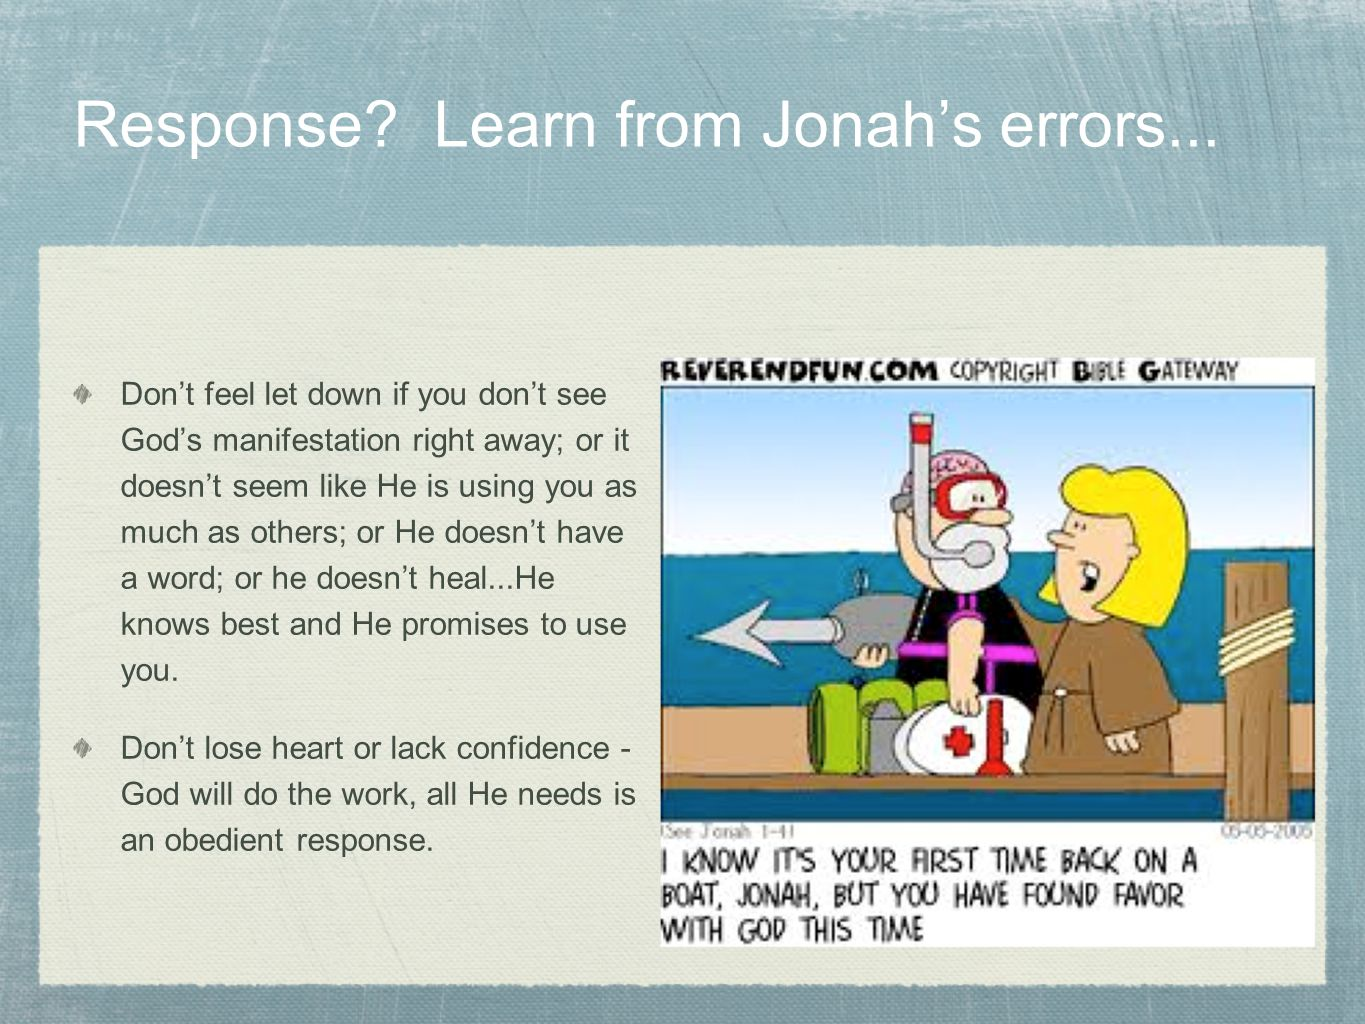 Response. Learn from Jonah's errors...